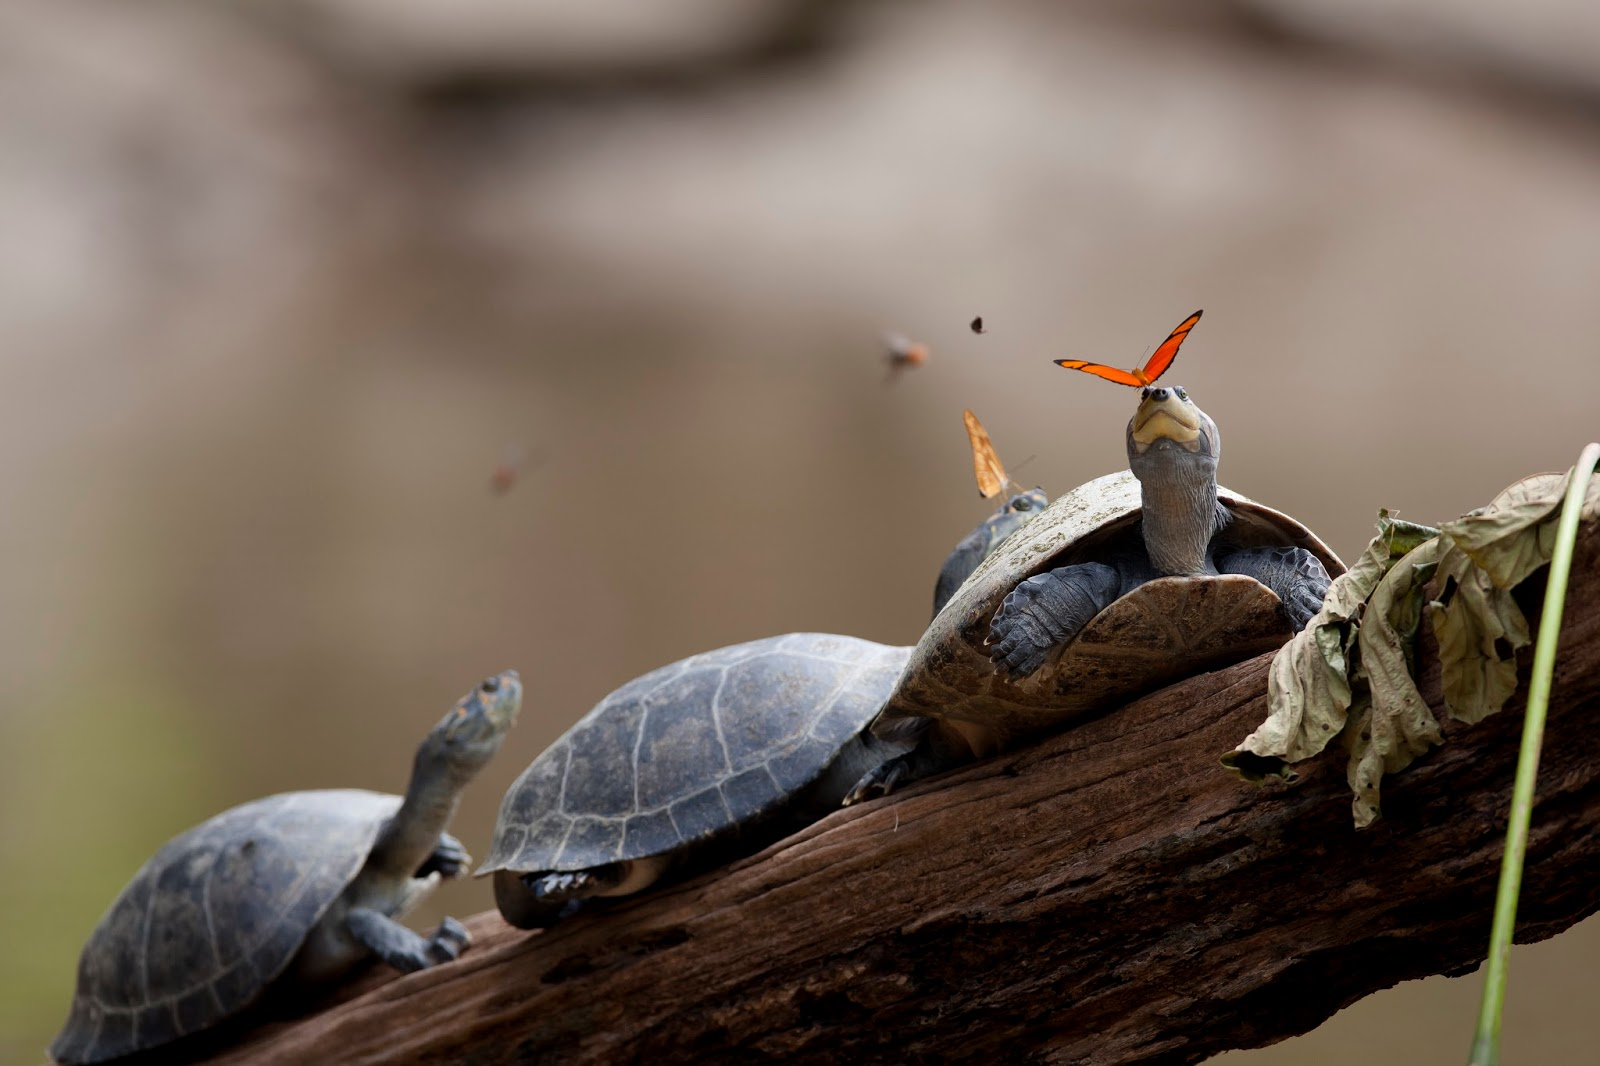 Reptiles: A butterfly feeding on the tears of a turtle in Ecuador